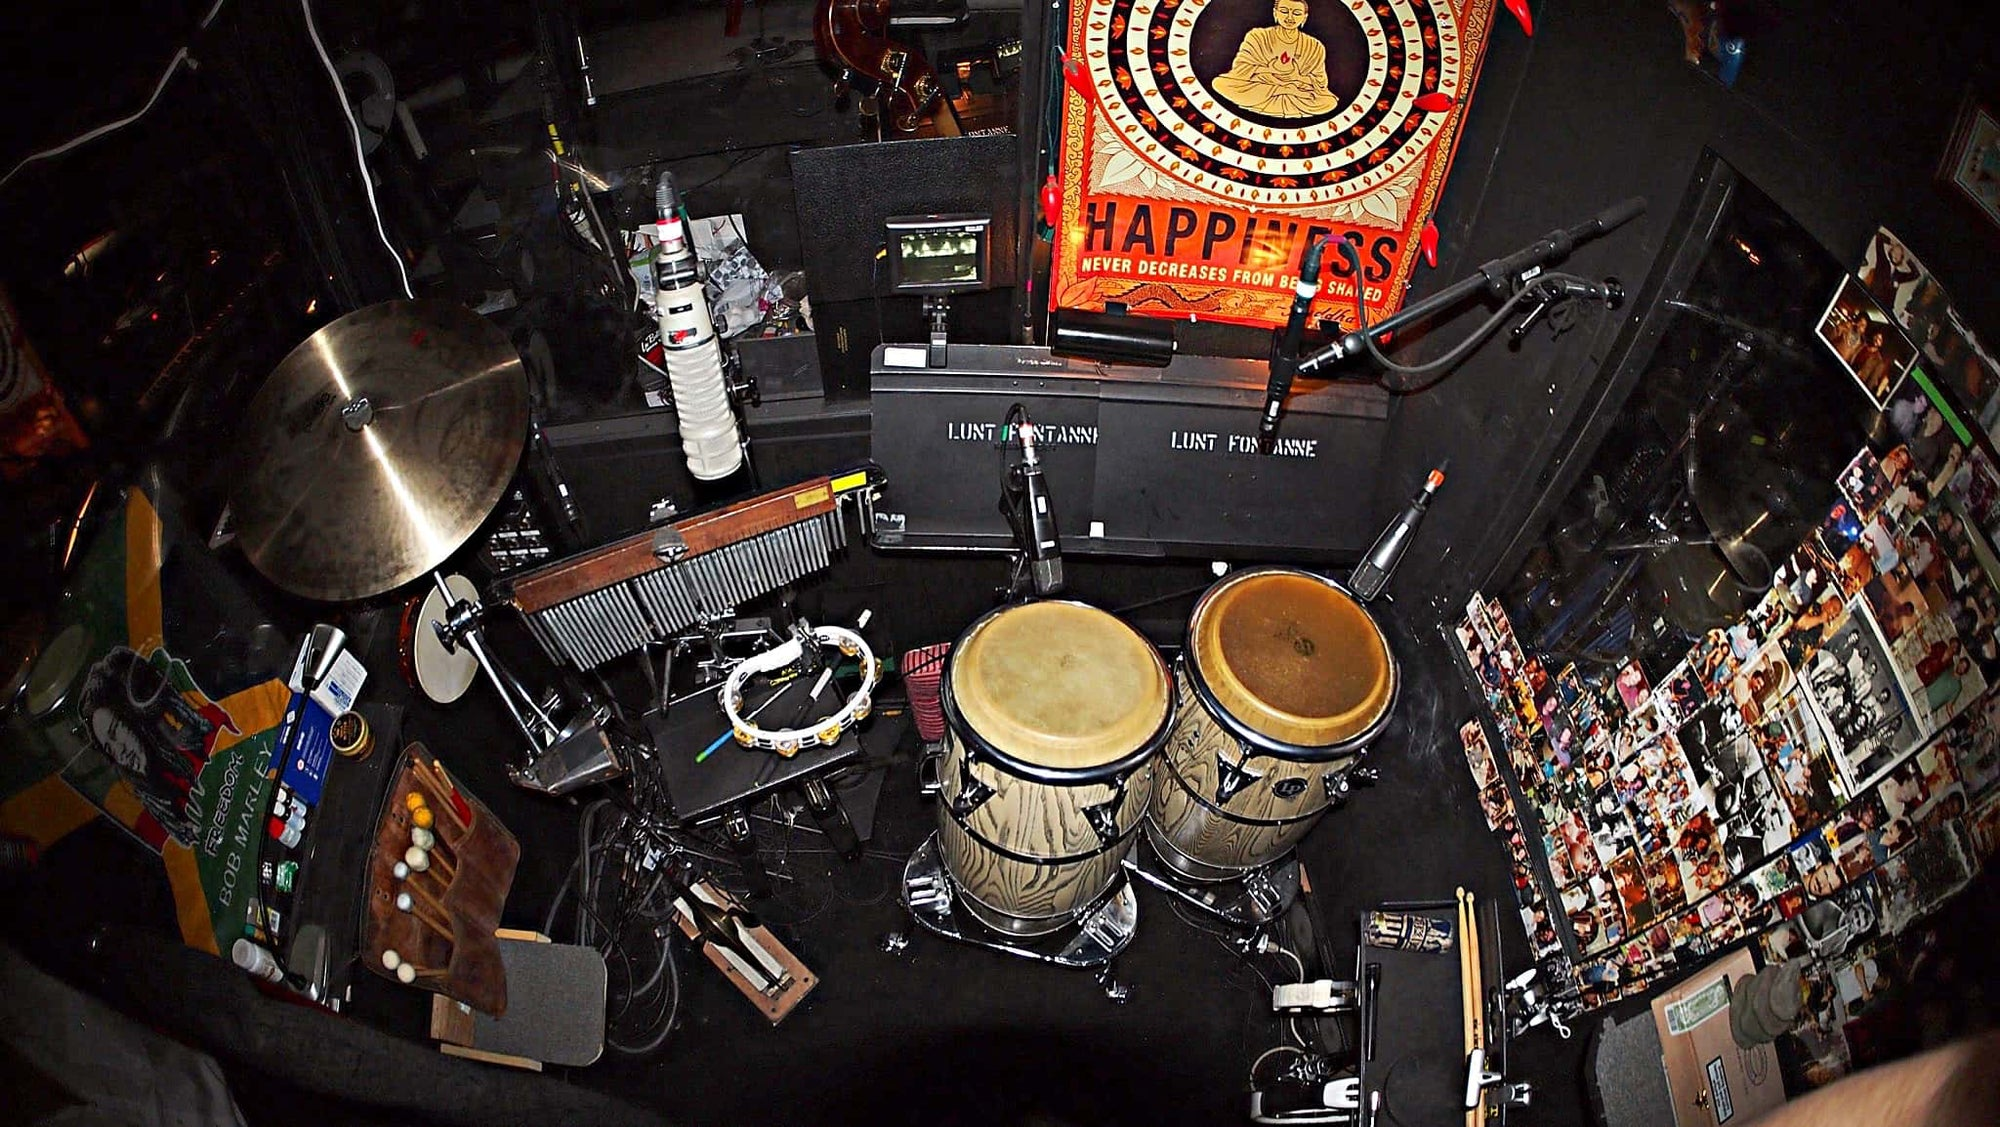 Roger Squitero's hand drum setup for the Broadway production of Motown at the Lunt-Fontanne Theatre.